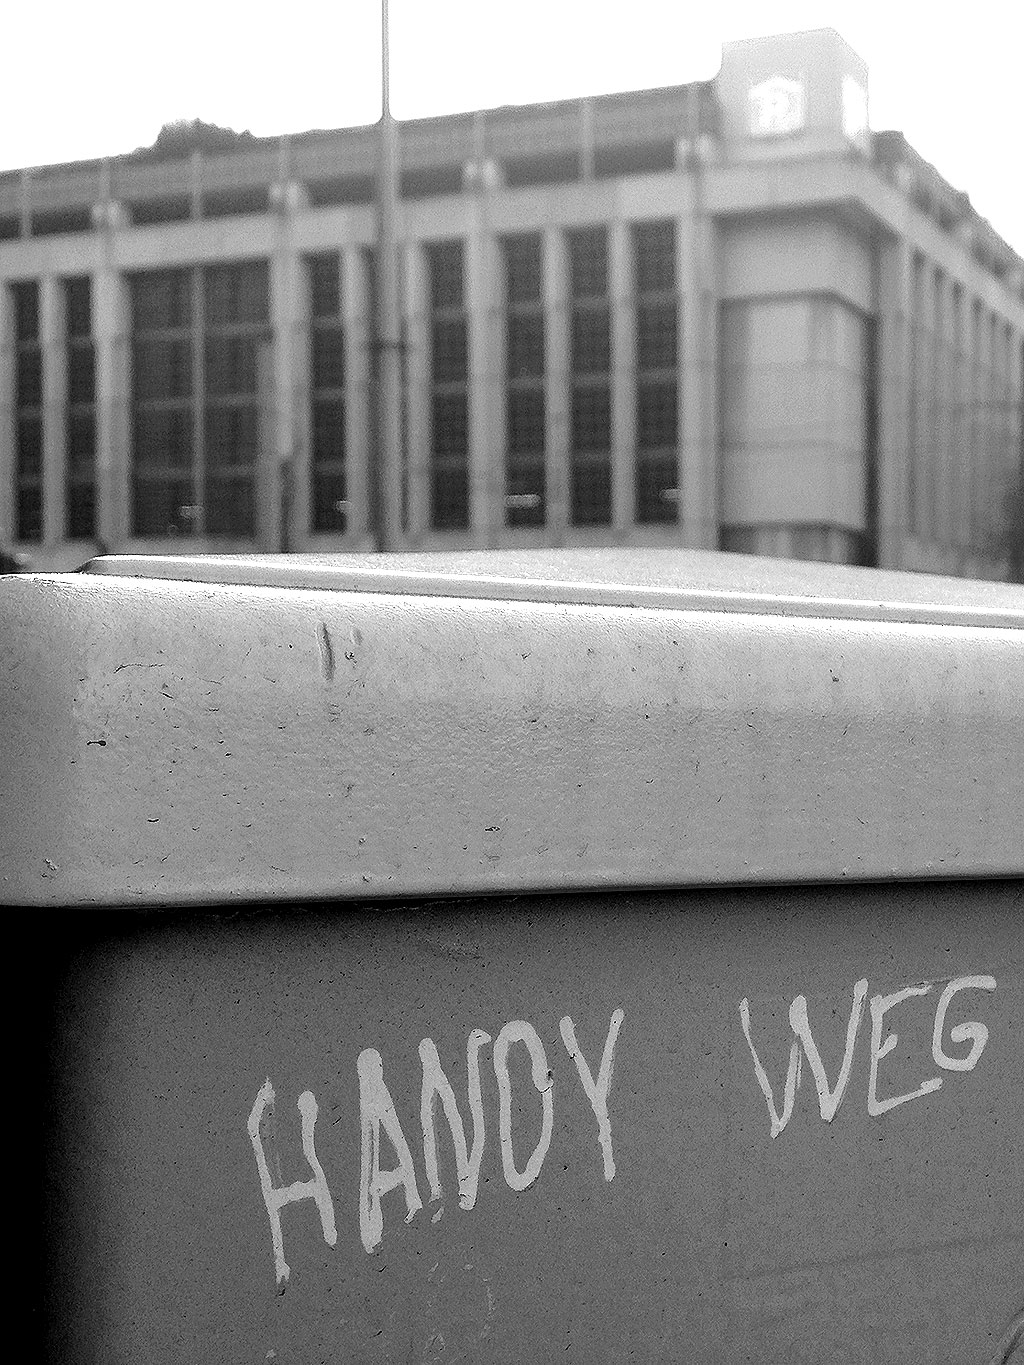 Streettalk in Frankfurt: Handy weg